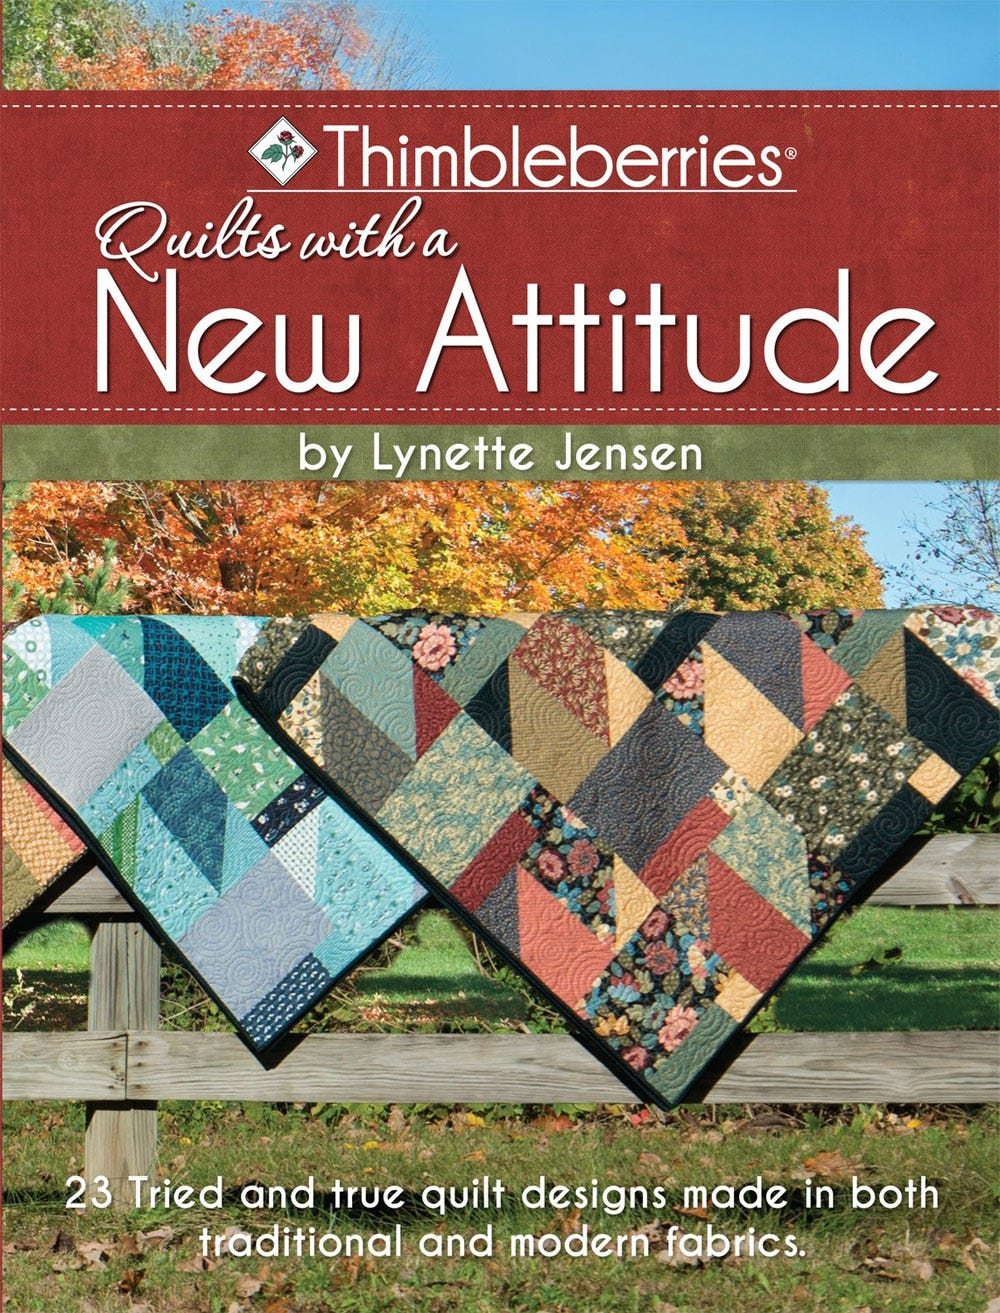 Thimbleberries (R) Quilts with a New Attitude